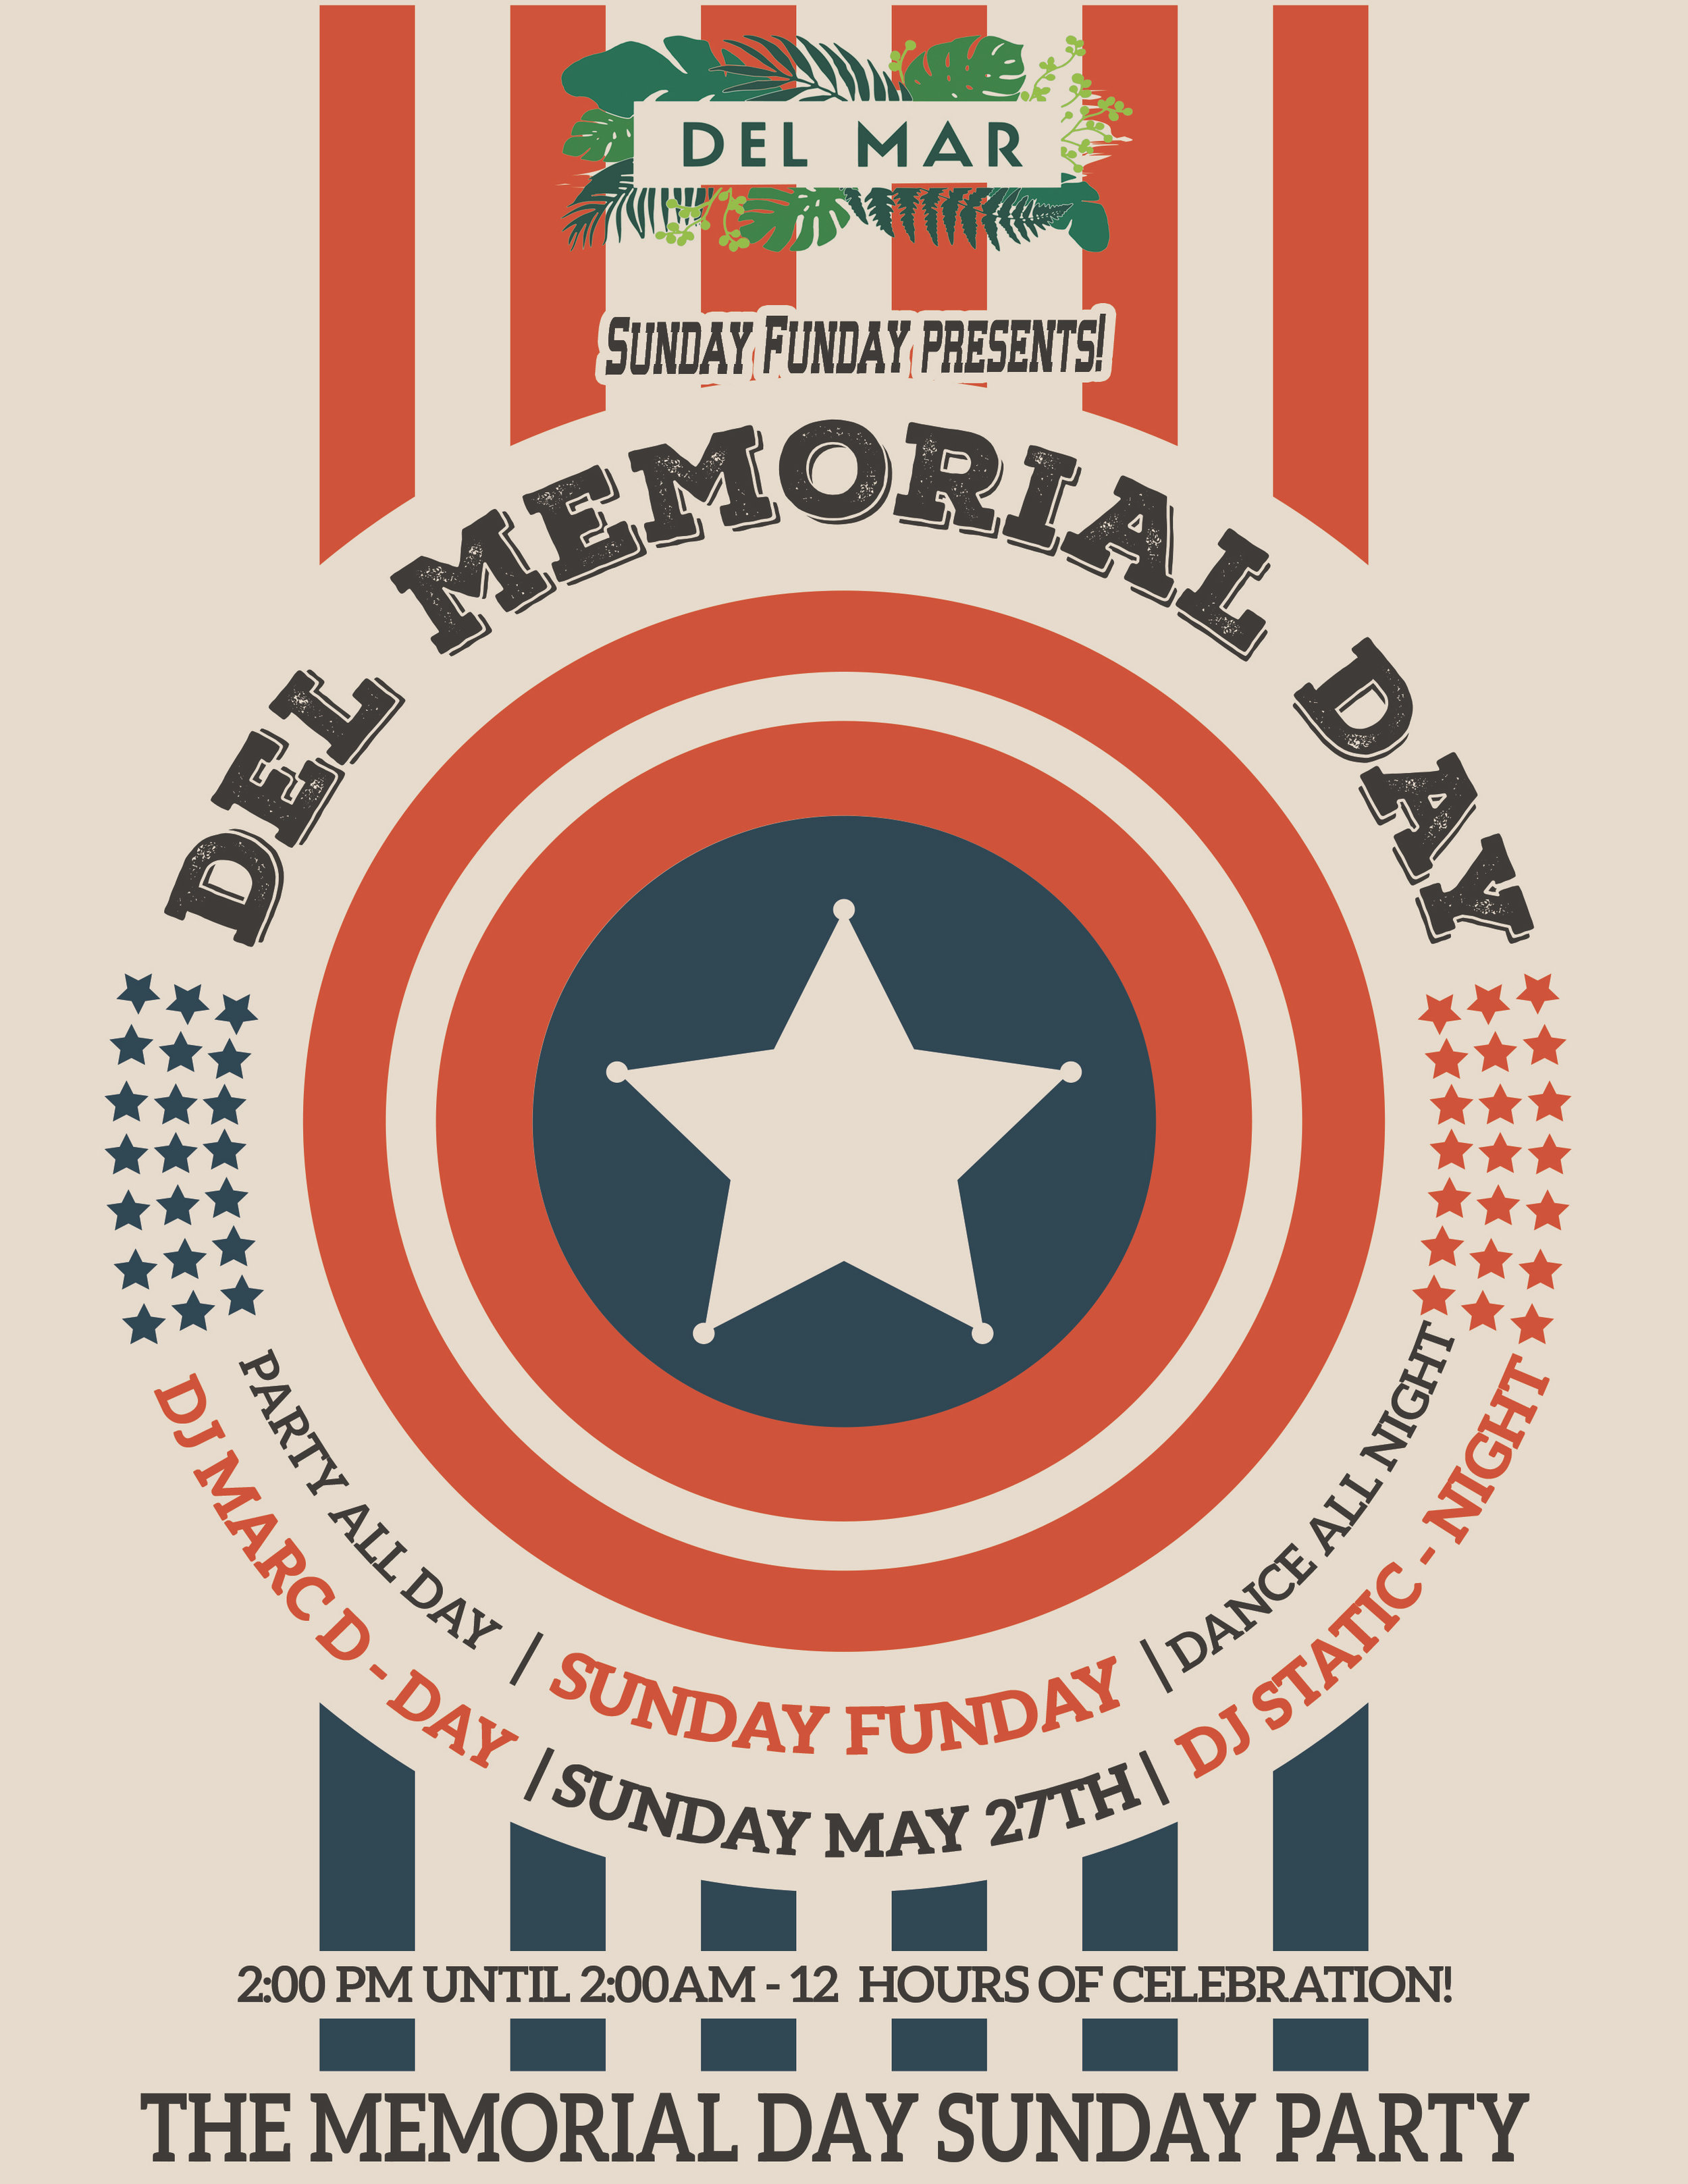 del memorial day flyer 5:27:18 PROOF (1).jpg